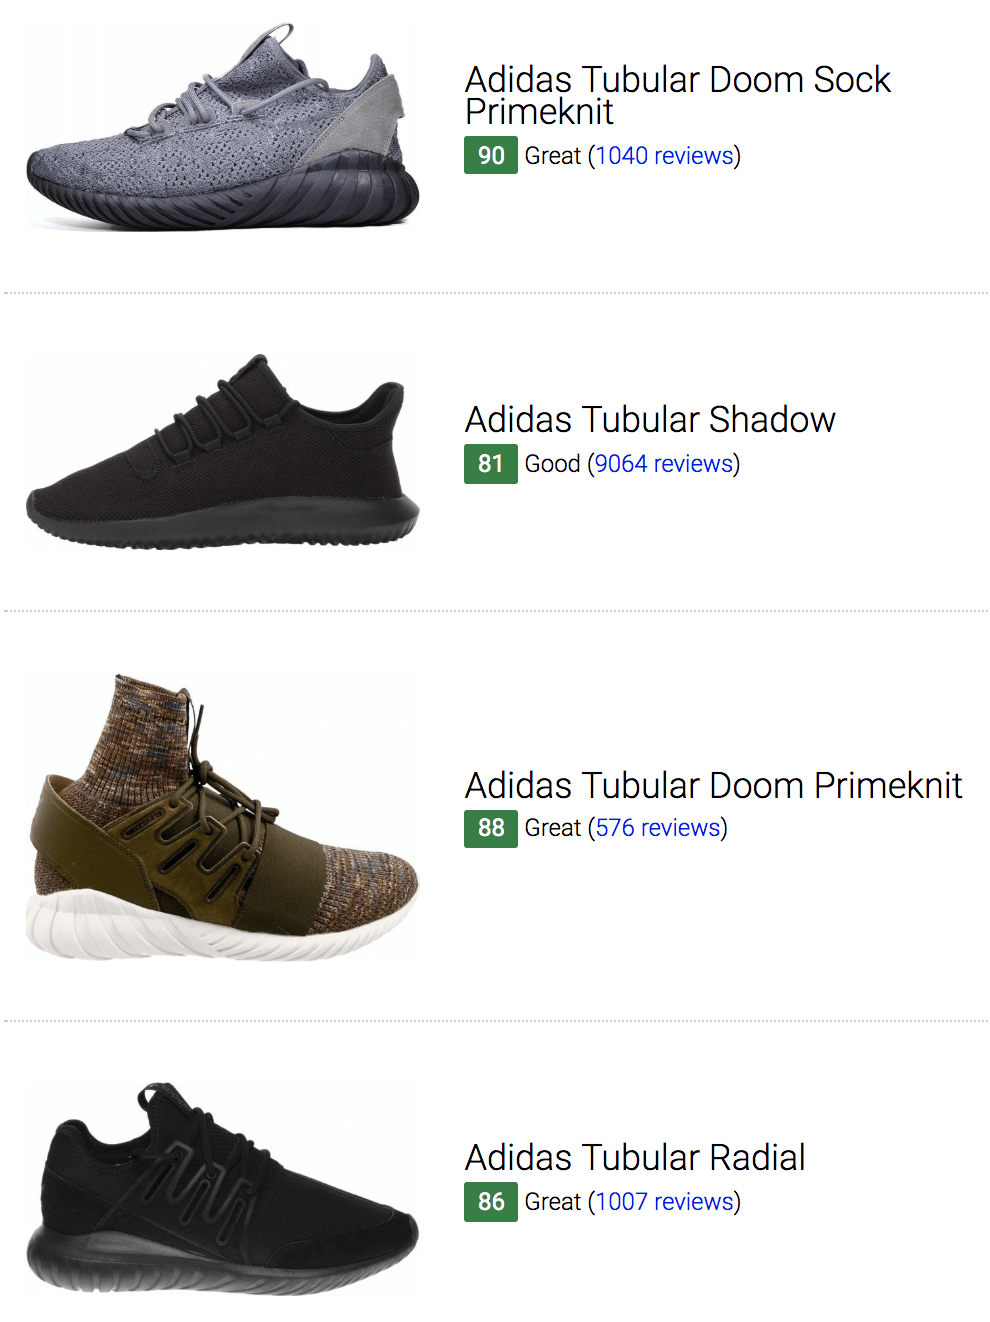 best adidas tubular sneakers